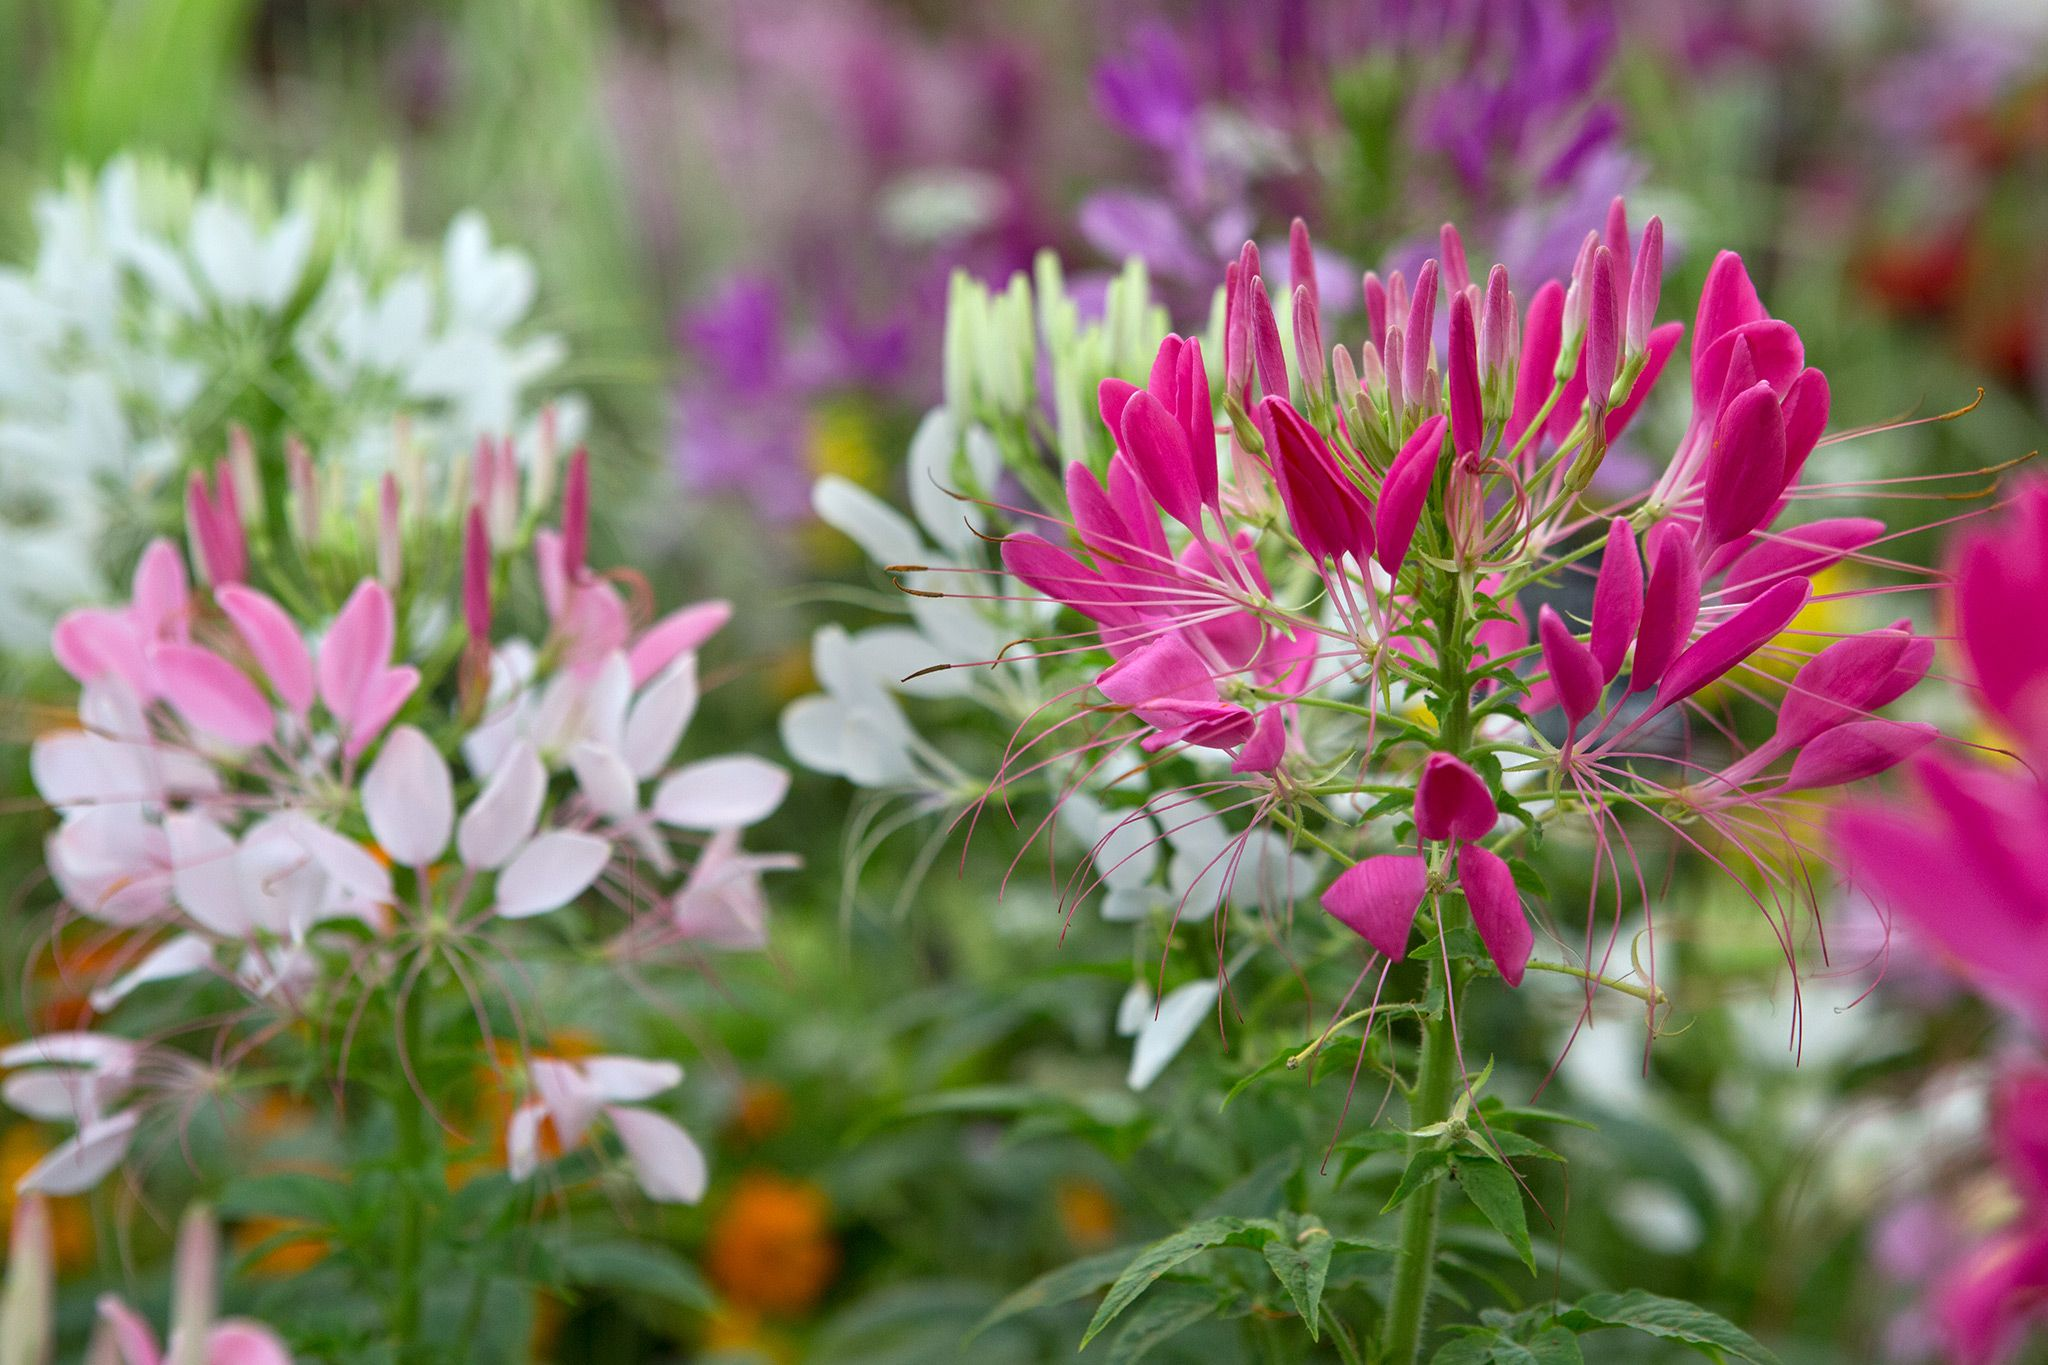 10 half hardy annuals to grow pinterest zinnias cut flowers and discover 10 half hardy annuals to grow from seed including cosmos zinnia and nasturtium recommended by the experts at bbc gardeners world magazine izmirmasajfo